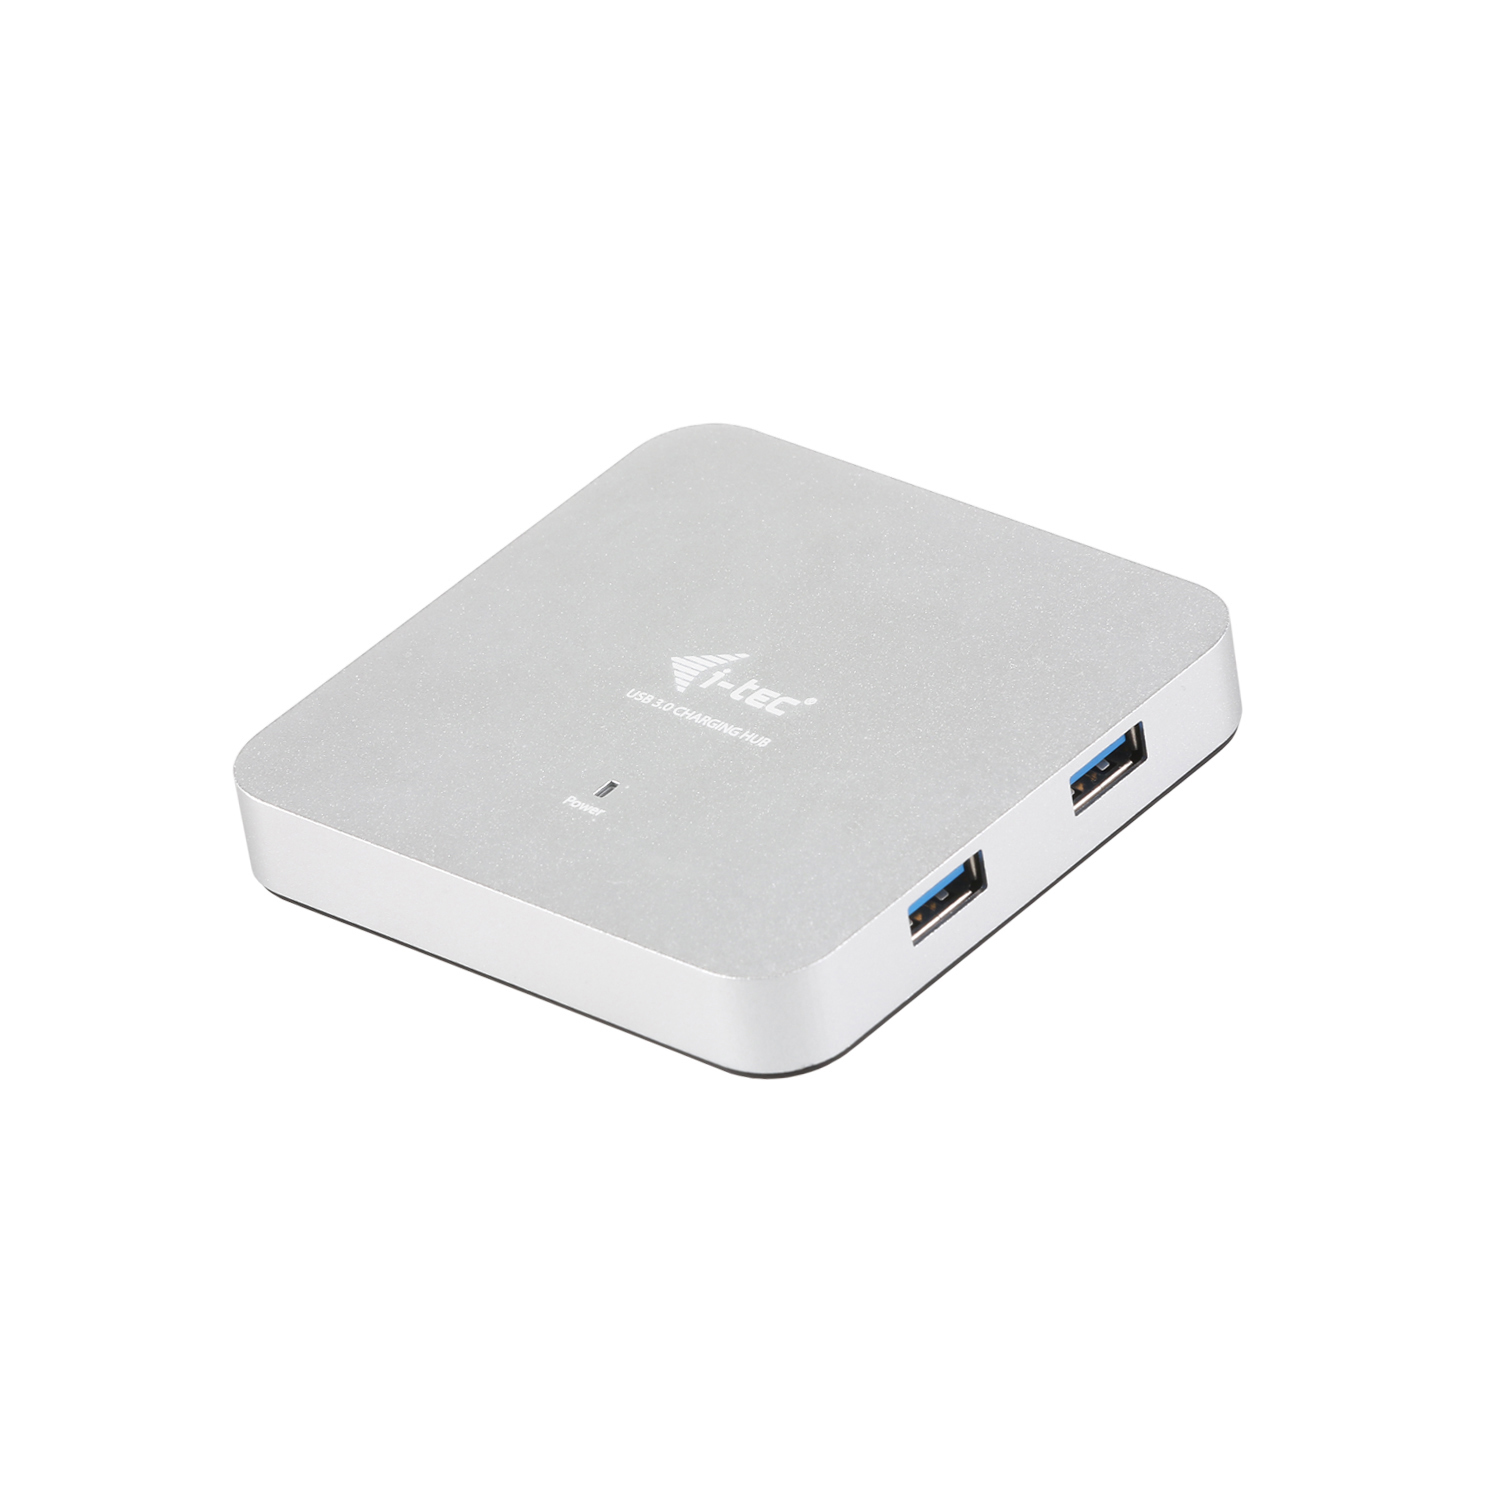 i-tec Metal Superspeed USB 3.0 4-Port Hub